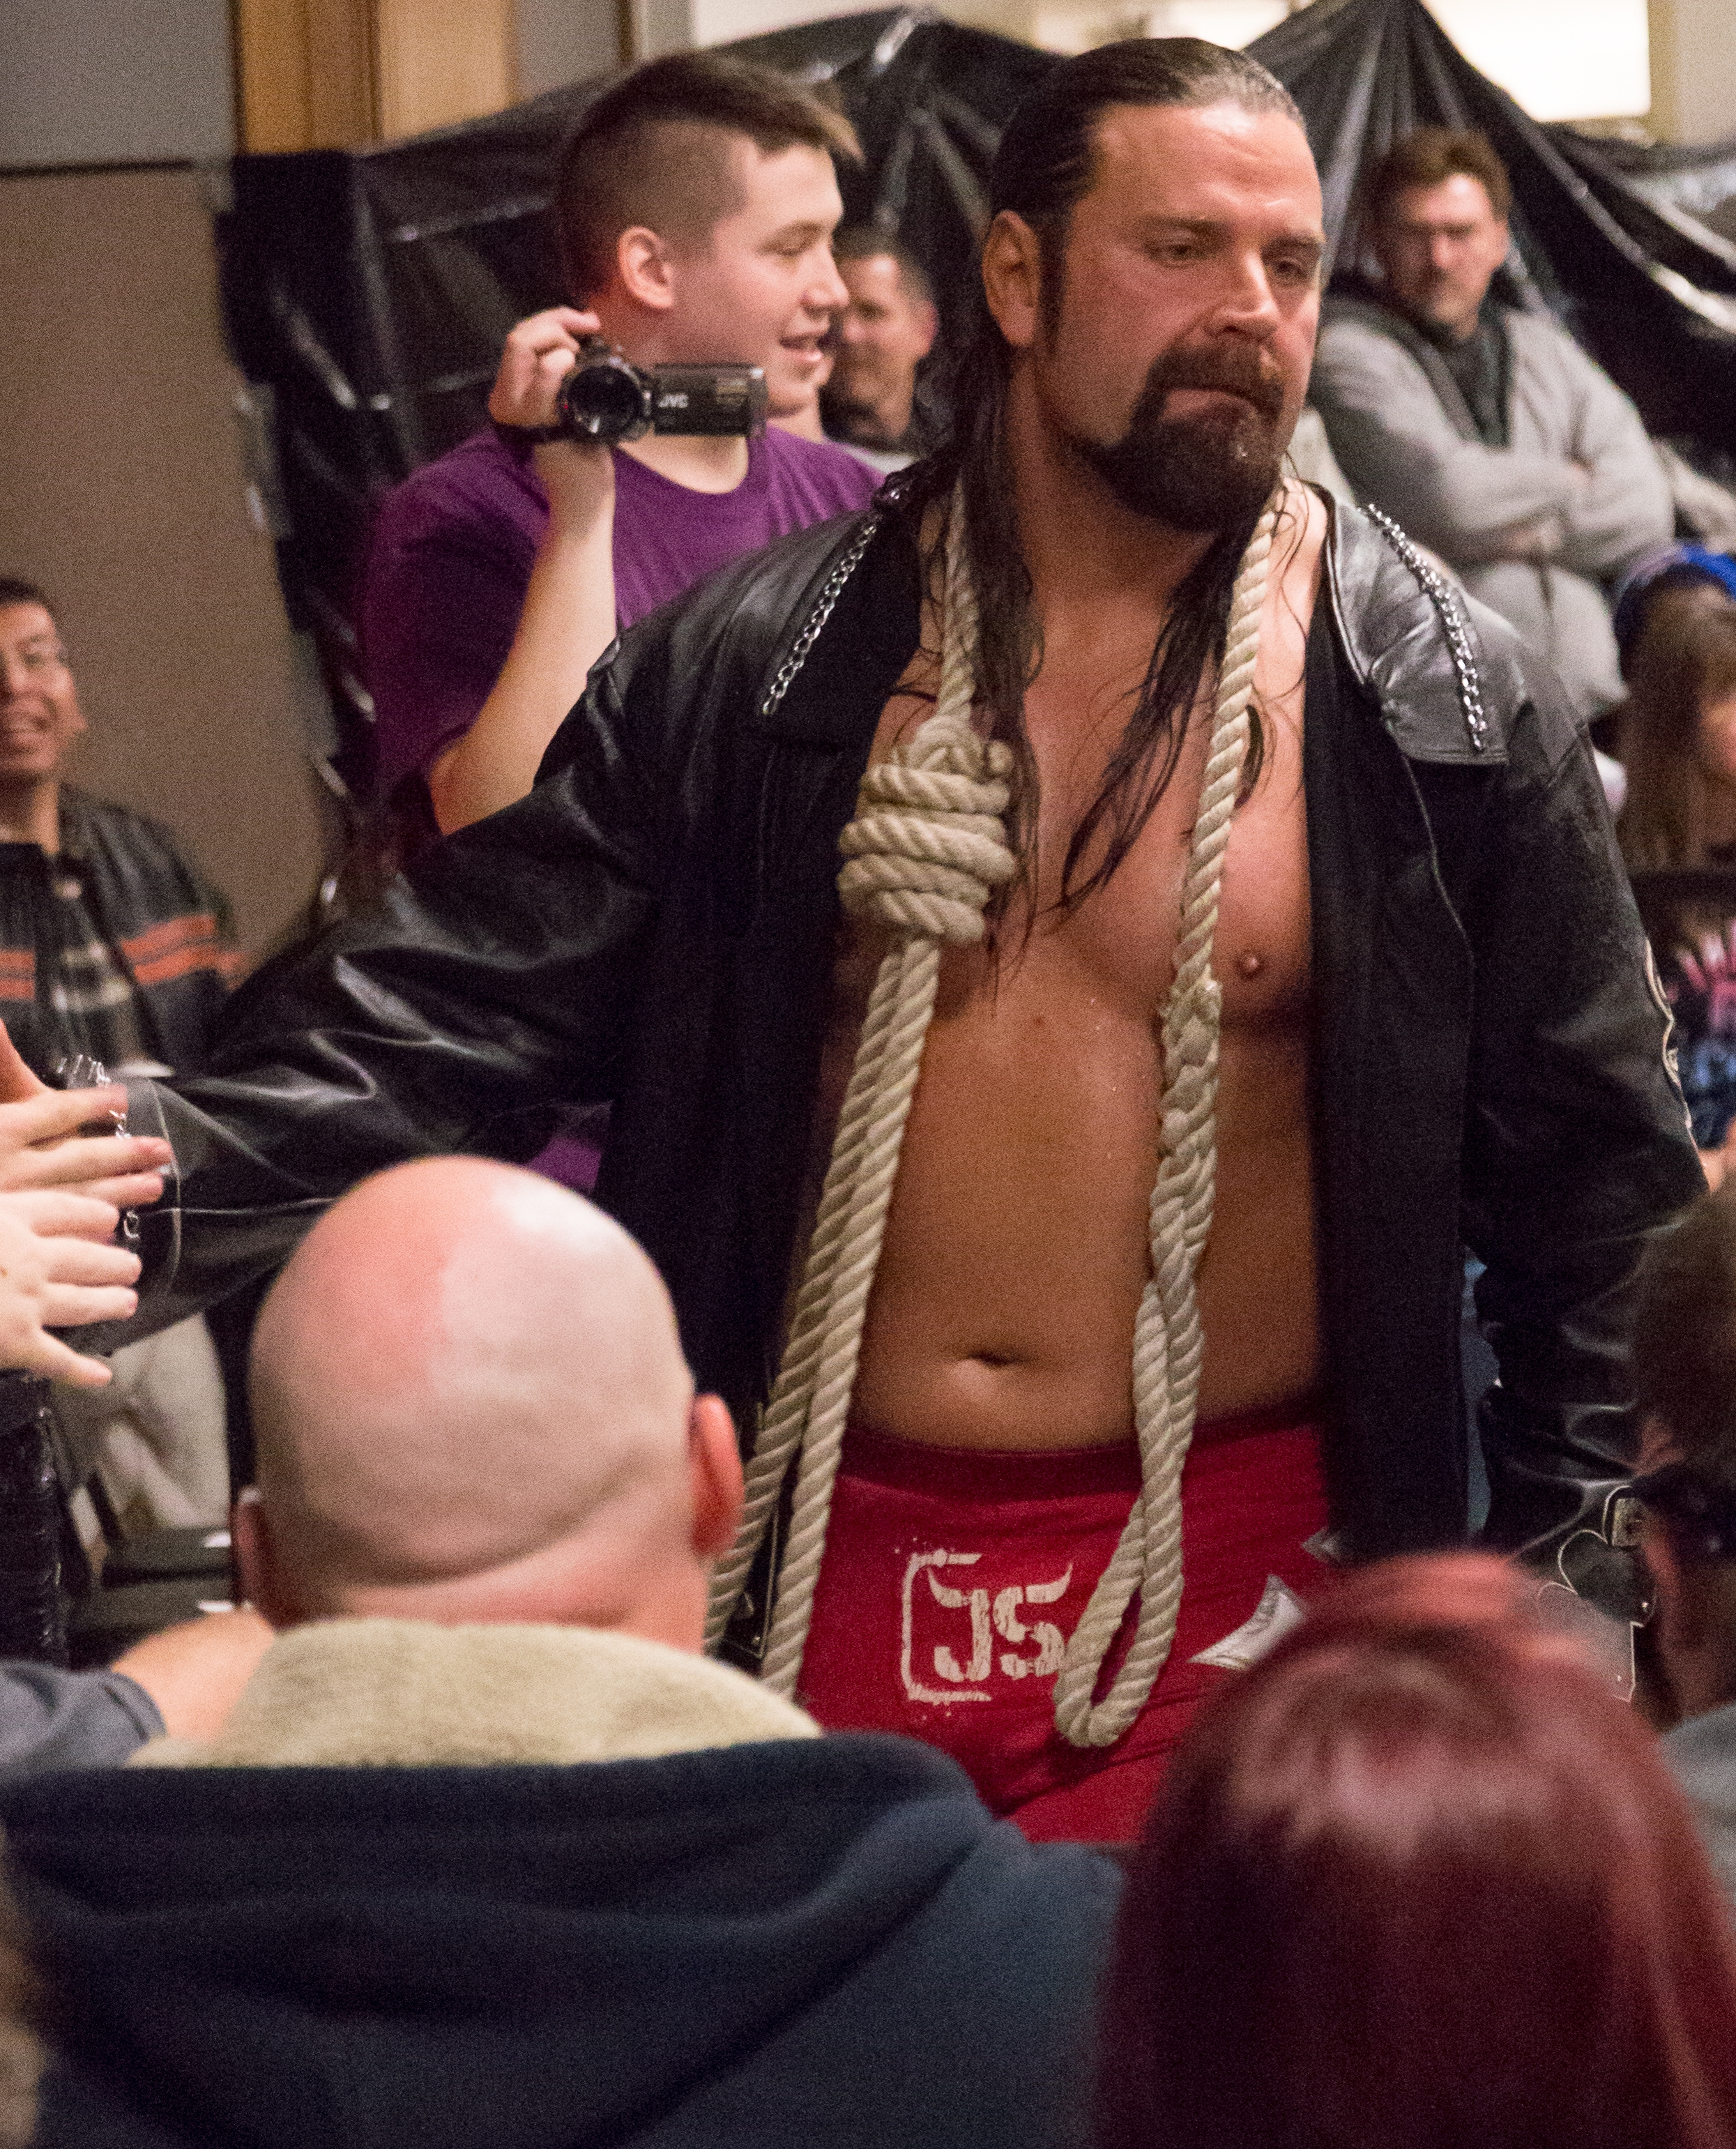 The 41-year old son of father (?) and mother(?) James Storm in 2018 photo. James Storm earned a  million dollar salary - leaving the net worth at 5 million in 2018